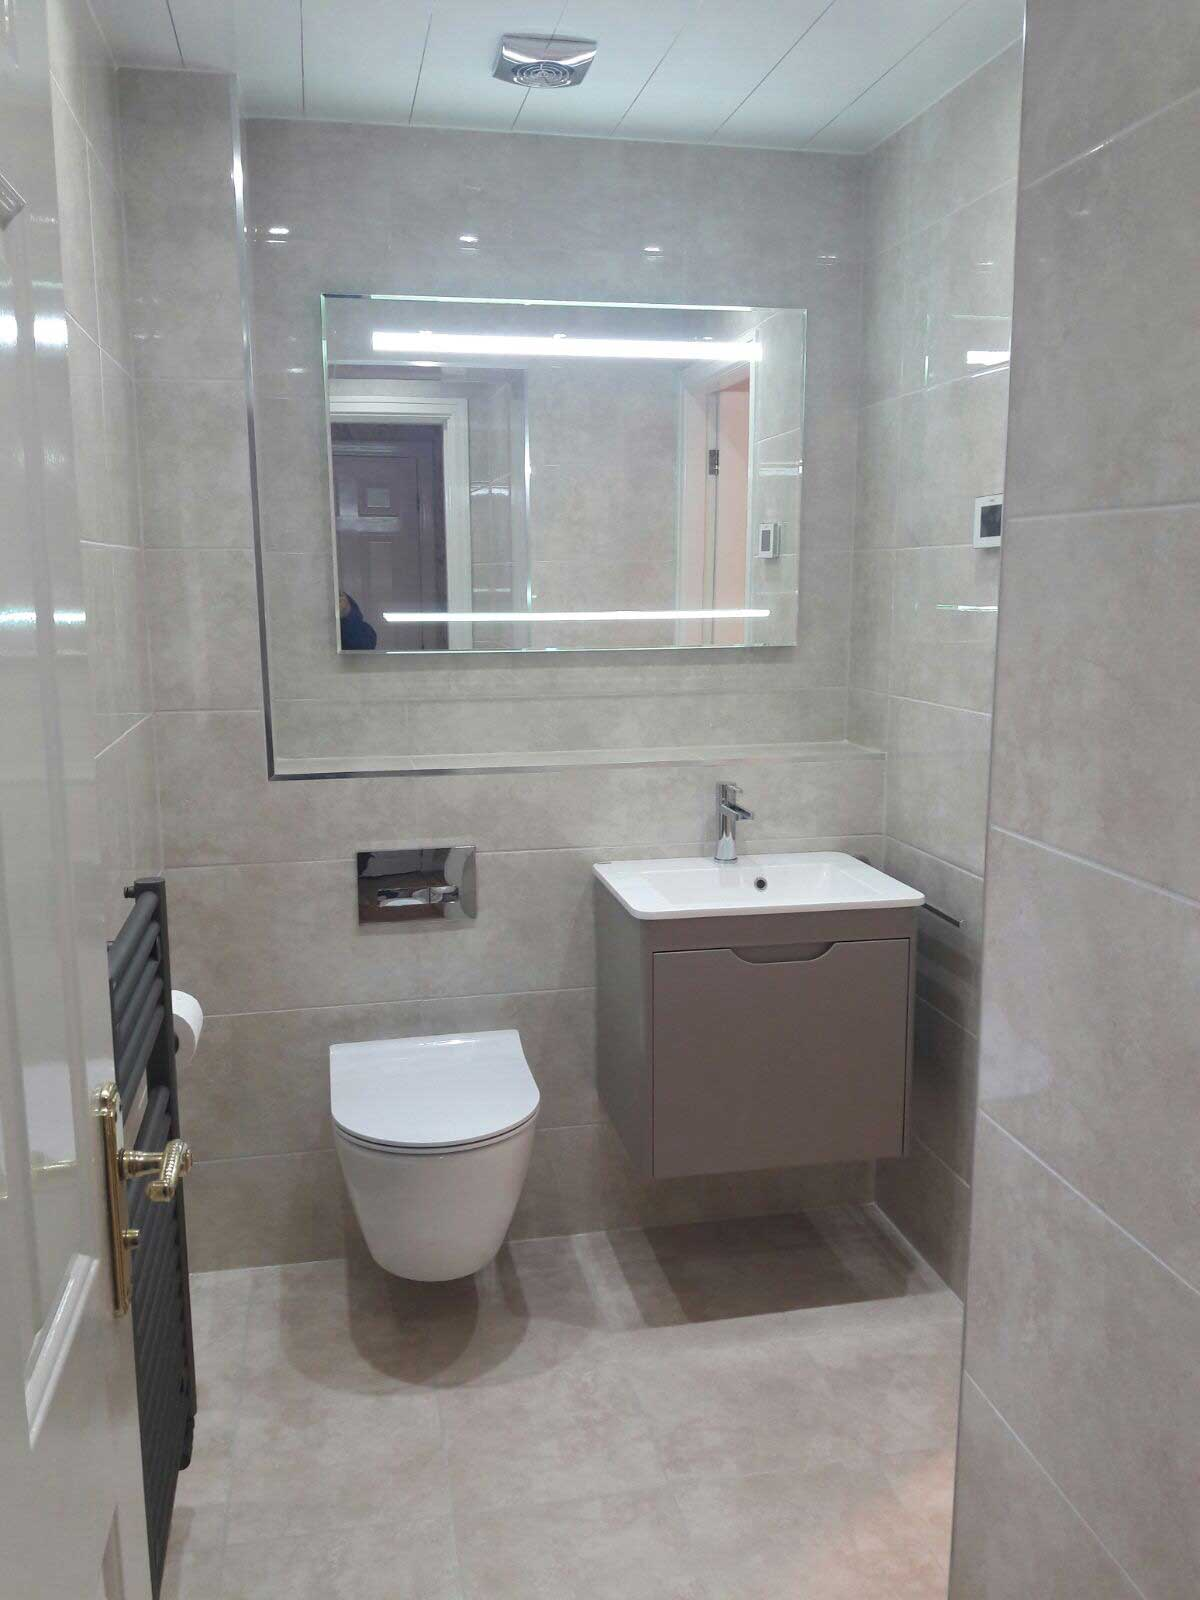 Image Gallery of Our Bathrooms  Boro Bathrooms